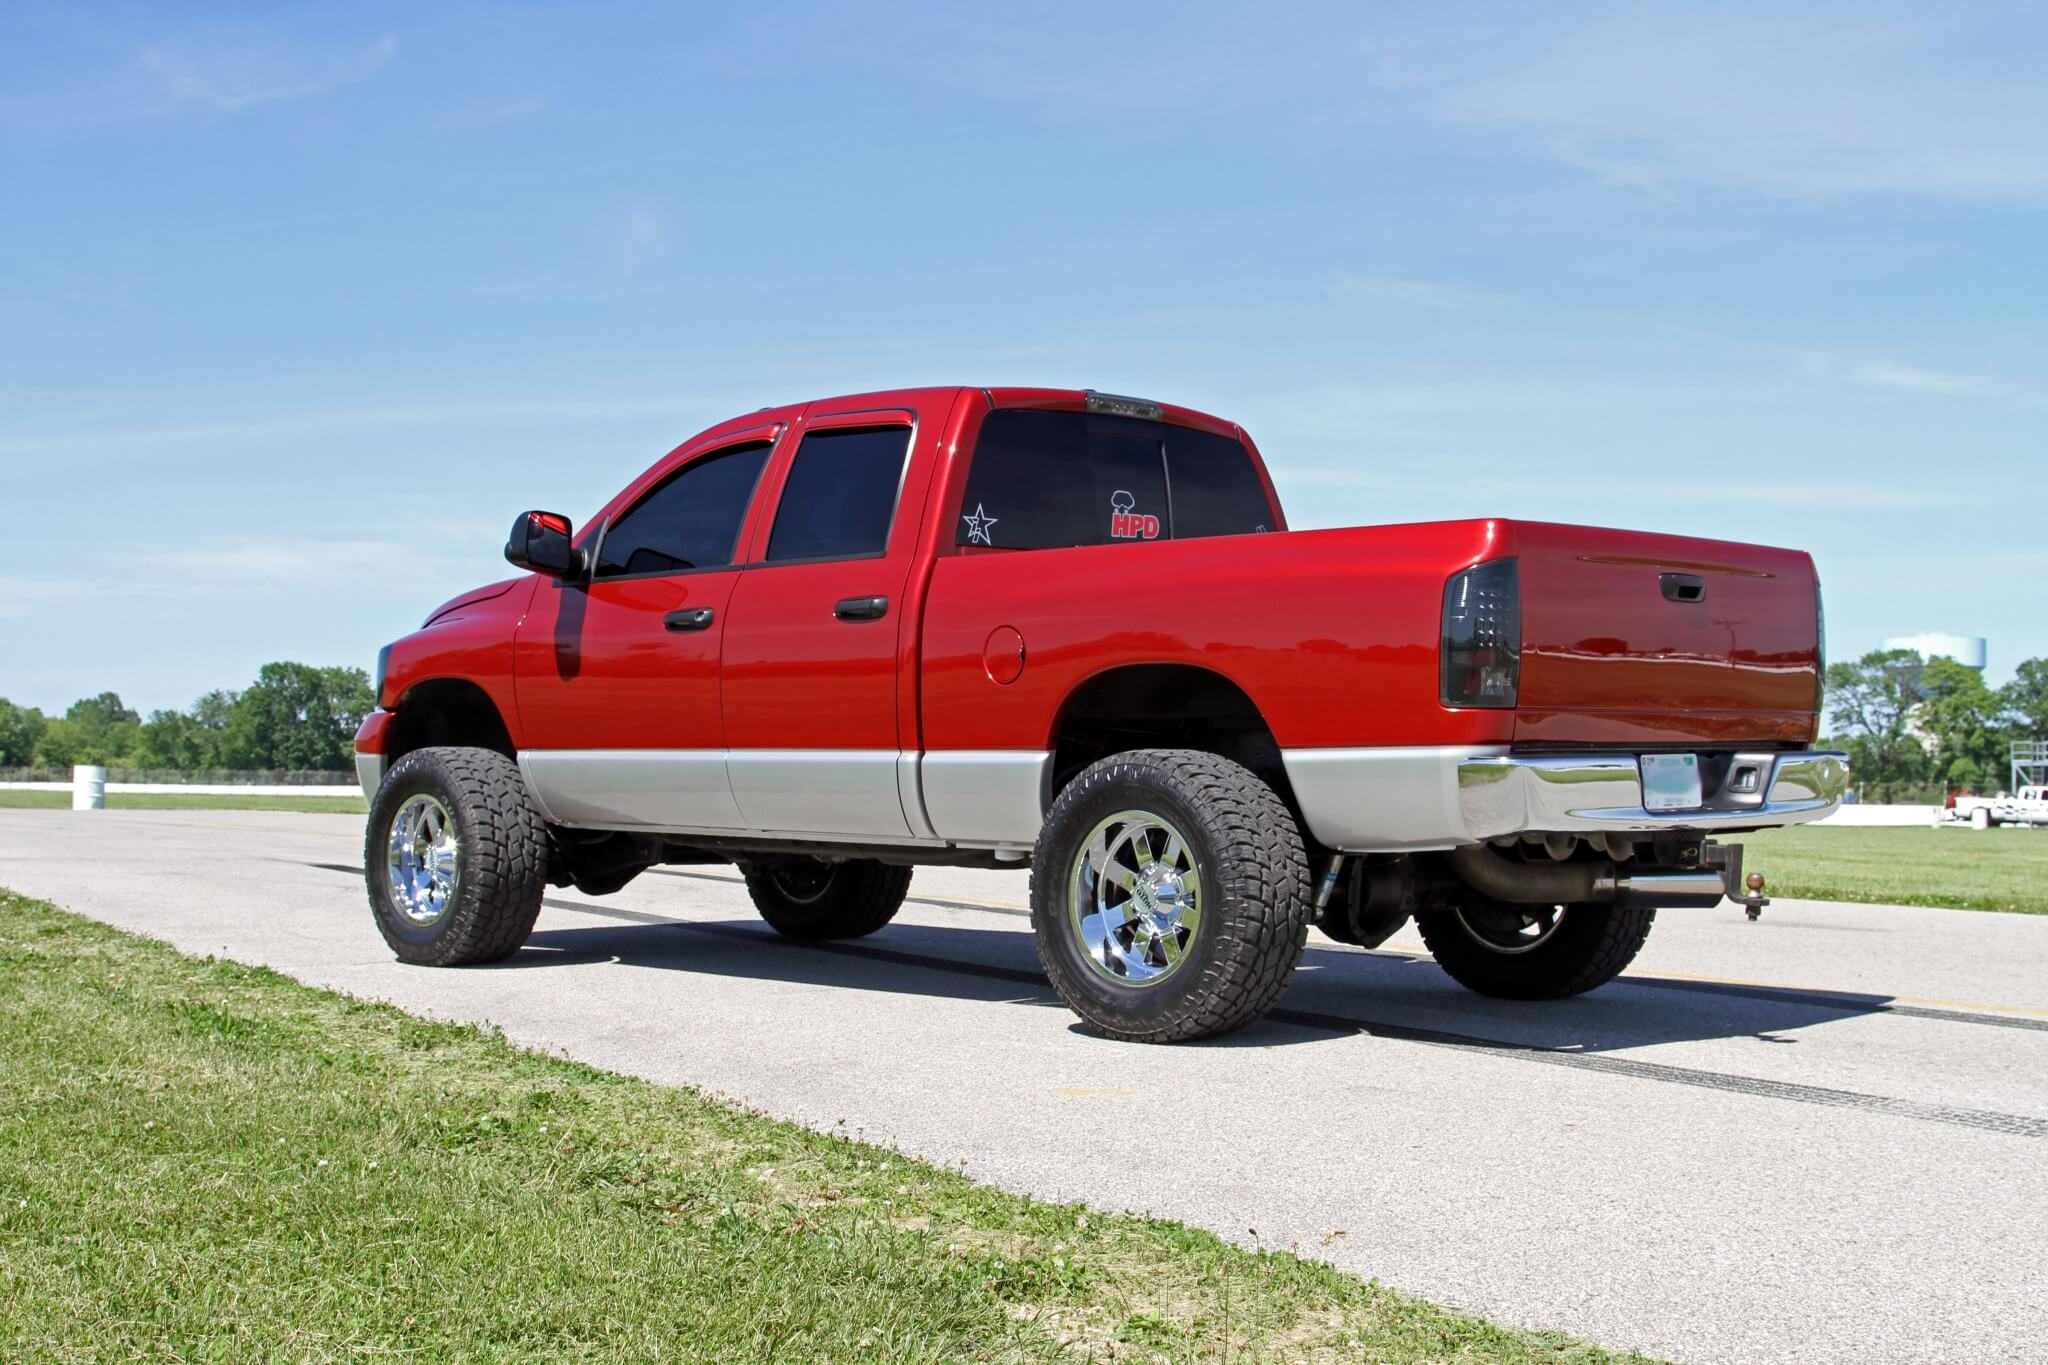 Two Tone Looker A Beautiful 20075 Dodge Ram 2007 Rear Bumper Chases Truck Looks Great From All Angles Here You Can See The Train Horns Peeking